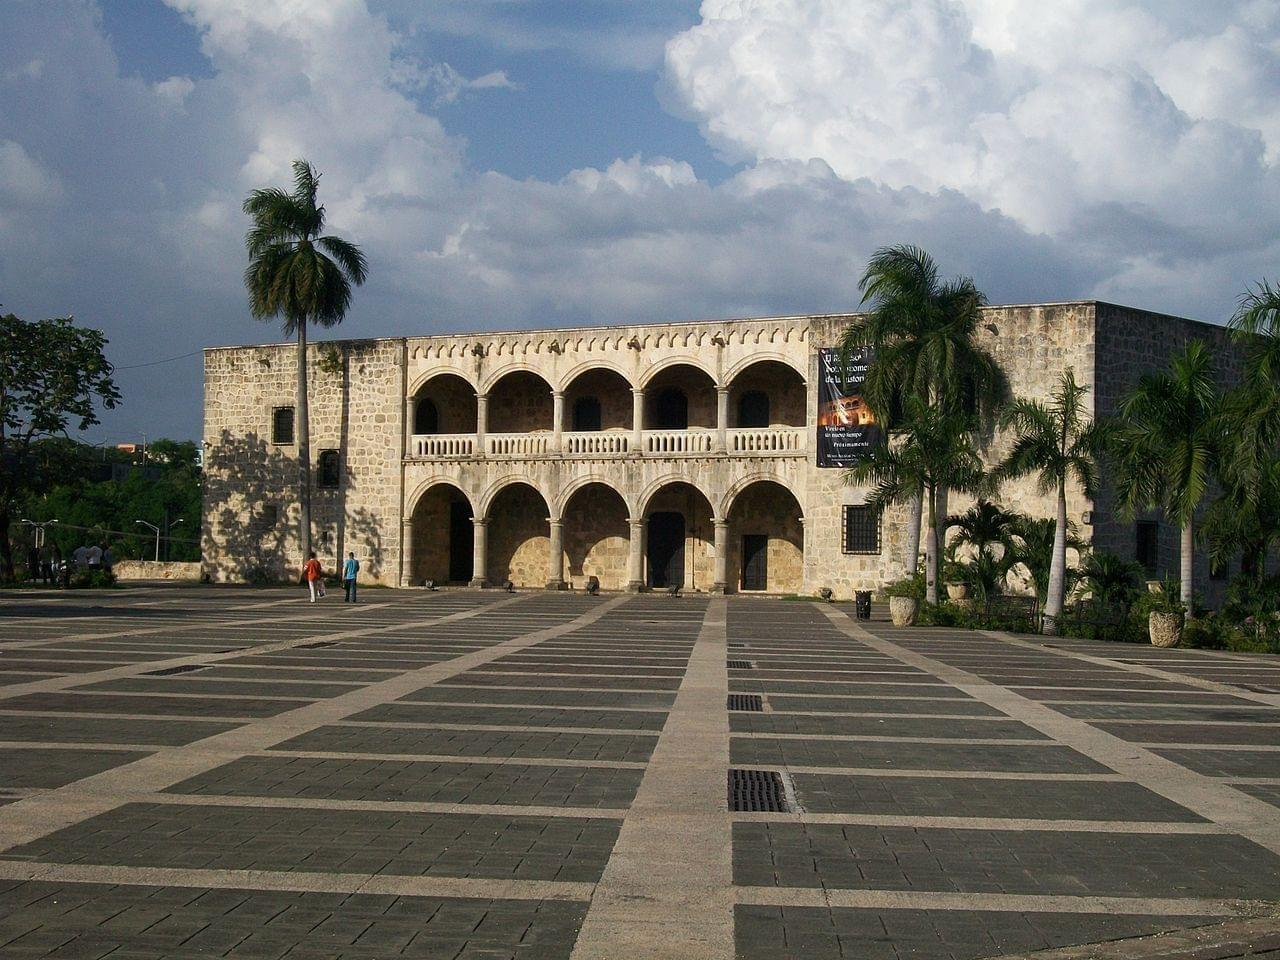 L'Alcazar de Colon